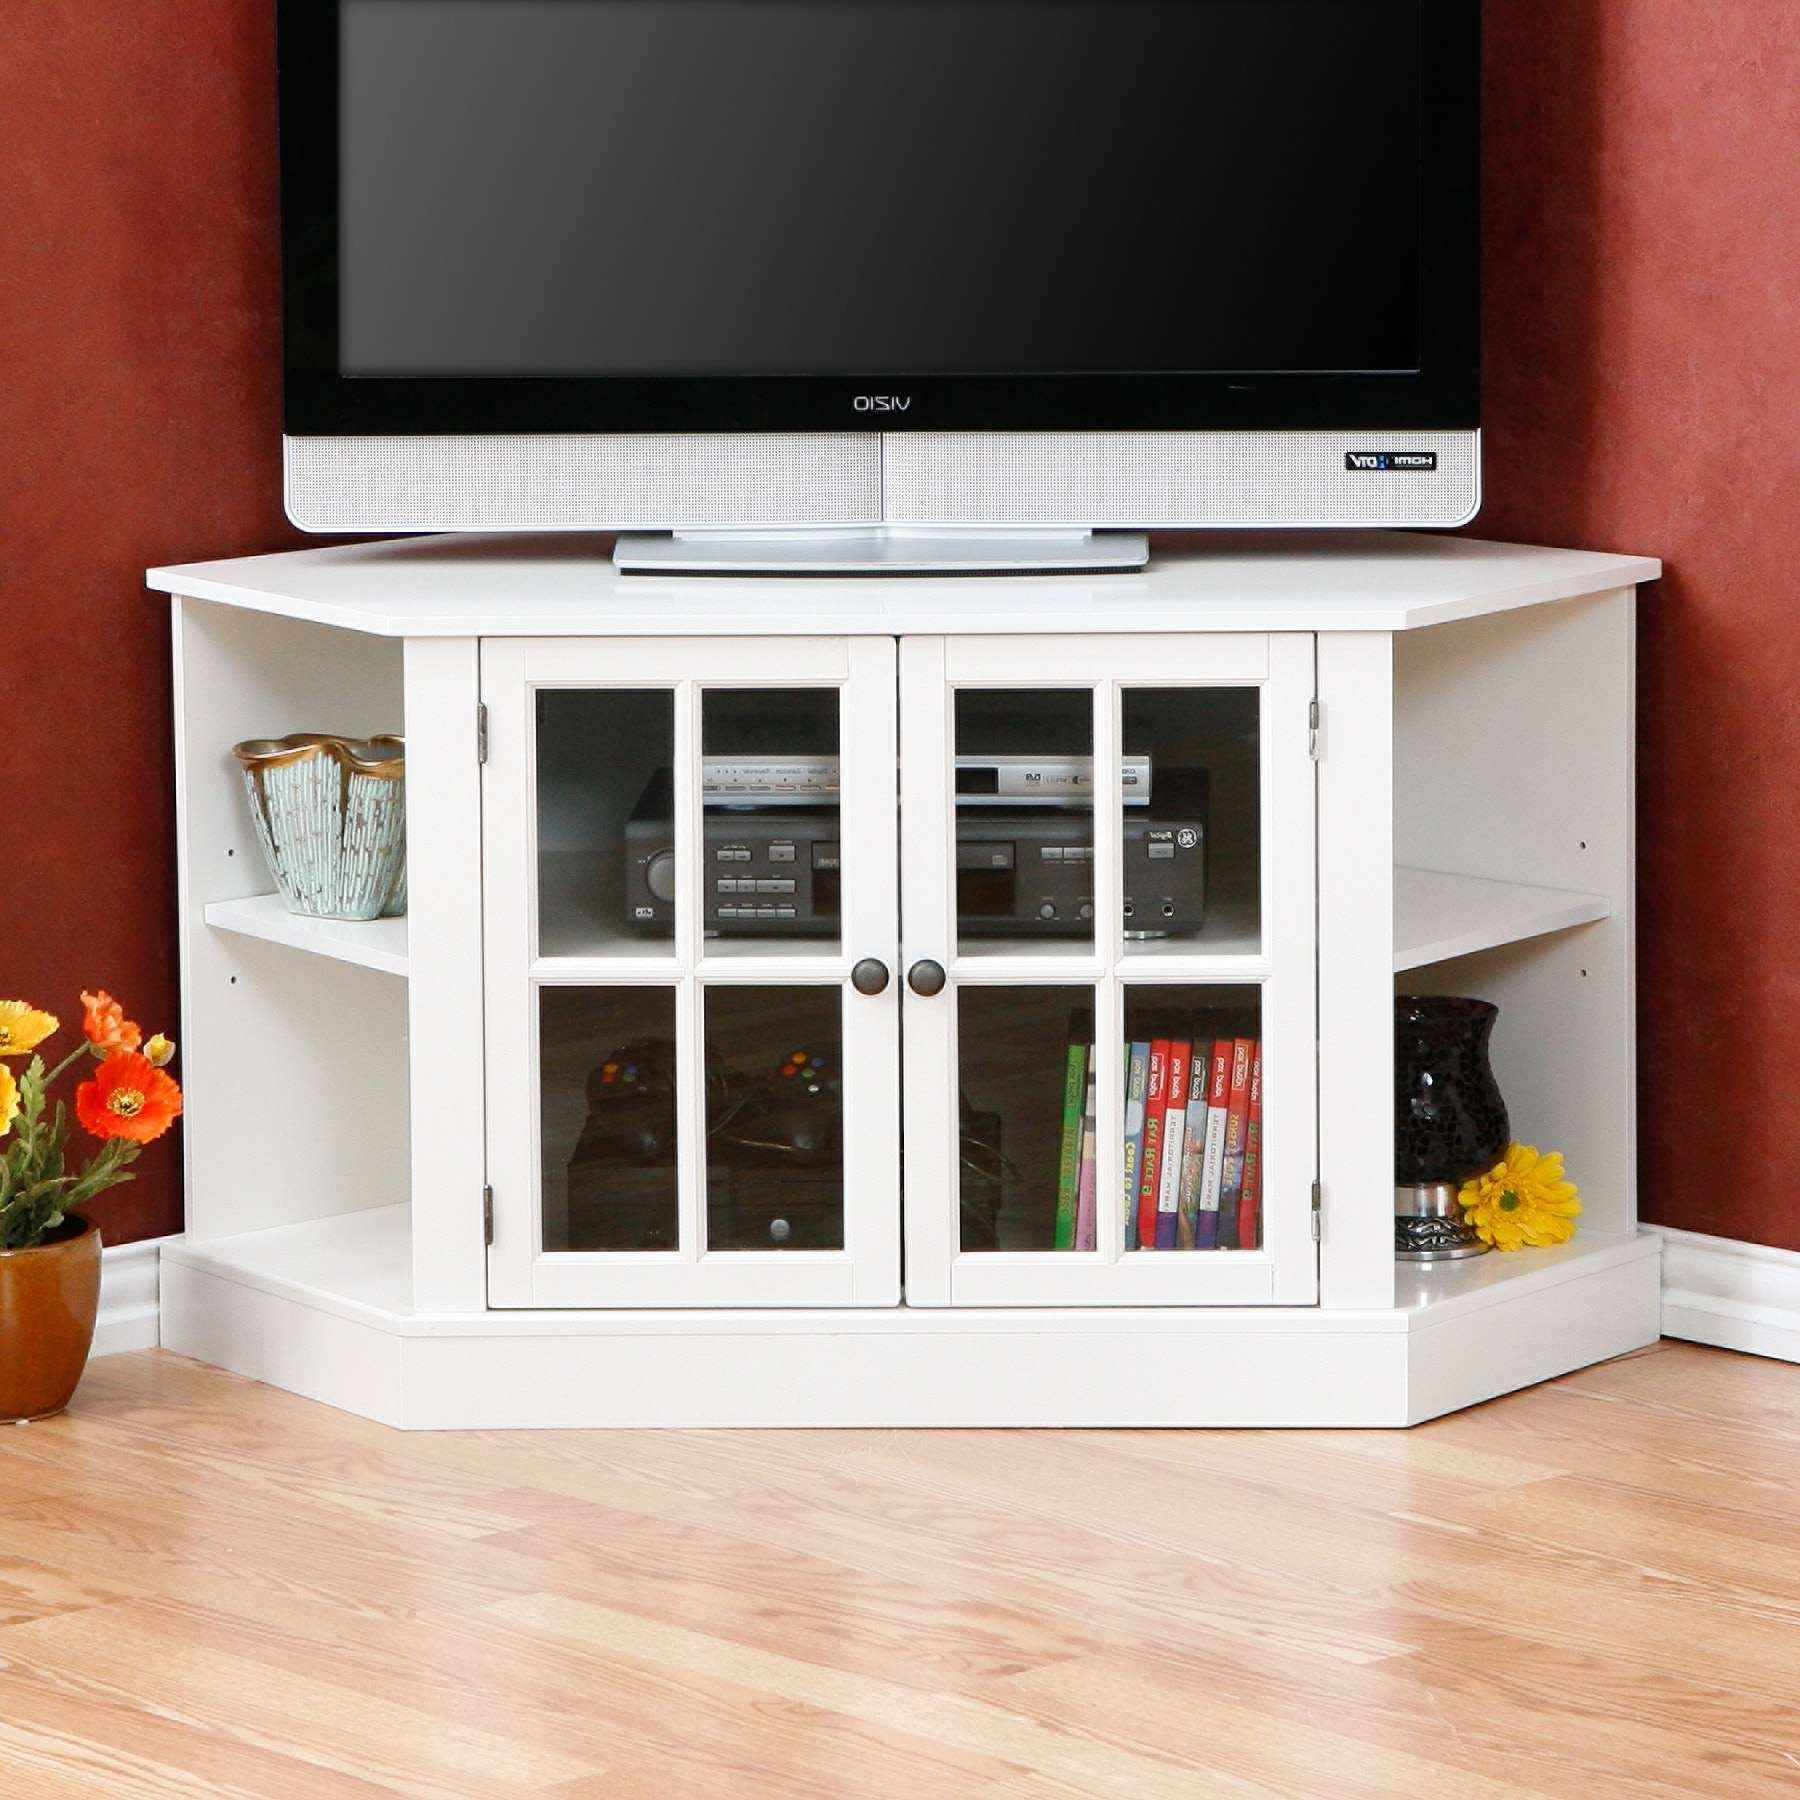 Whiteallv Desk With Glass Door Cabinet And Side Shelving Units For Within Tall Tv Cabinets Corner Unit (View 2 of 20)